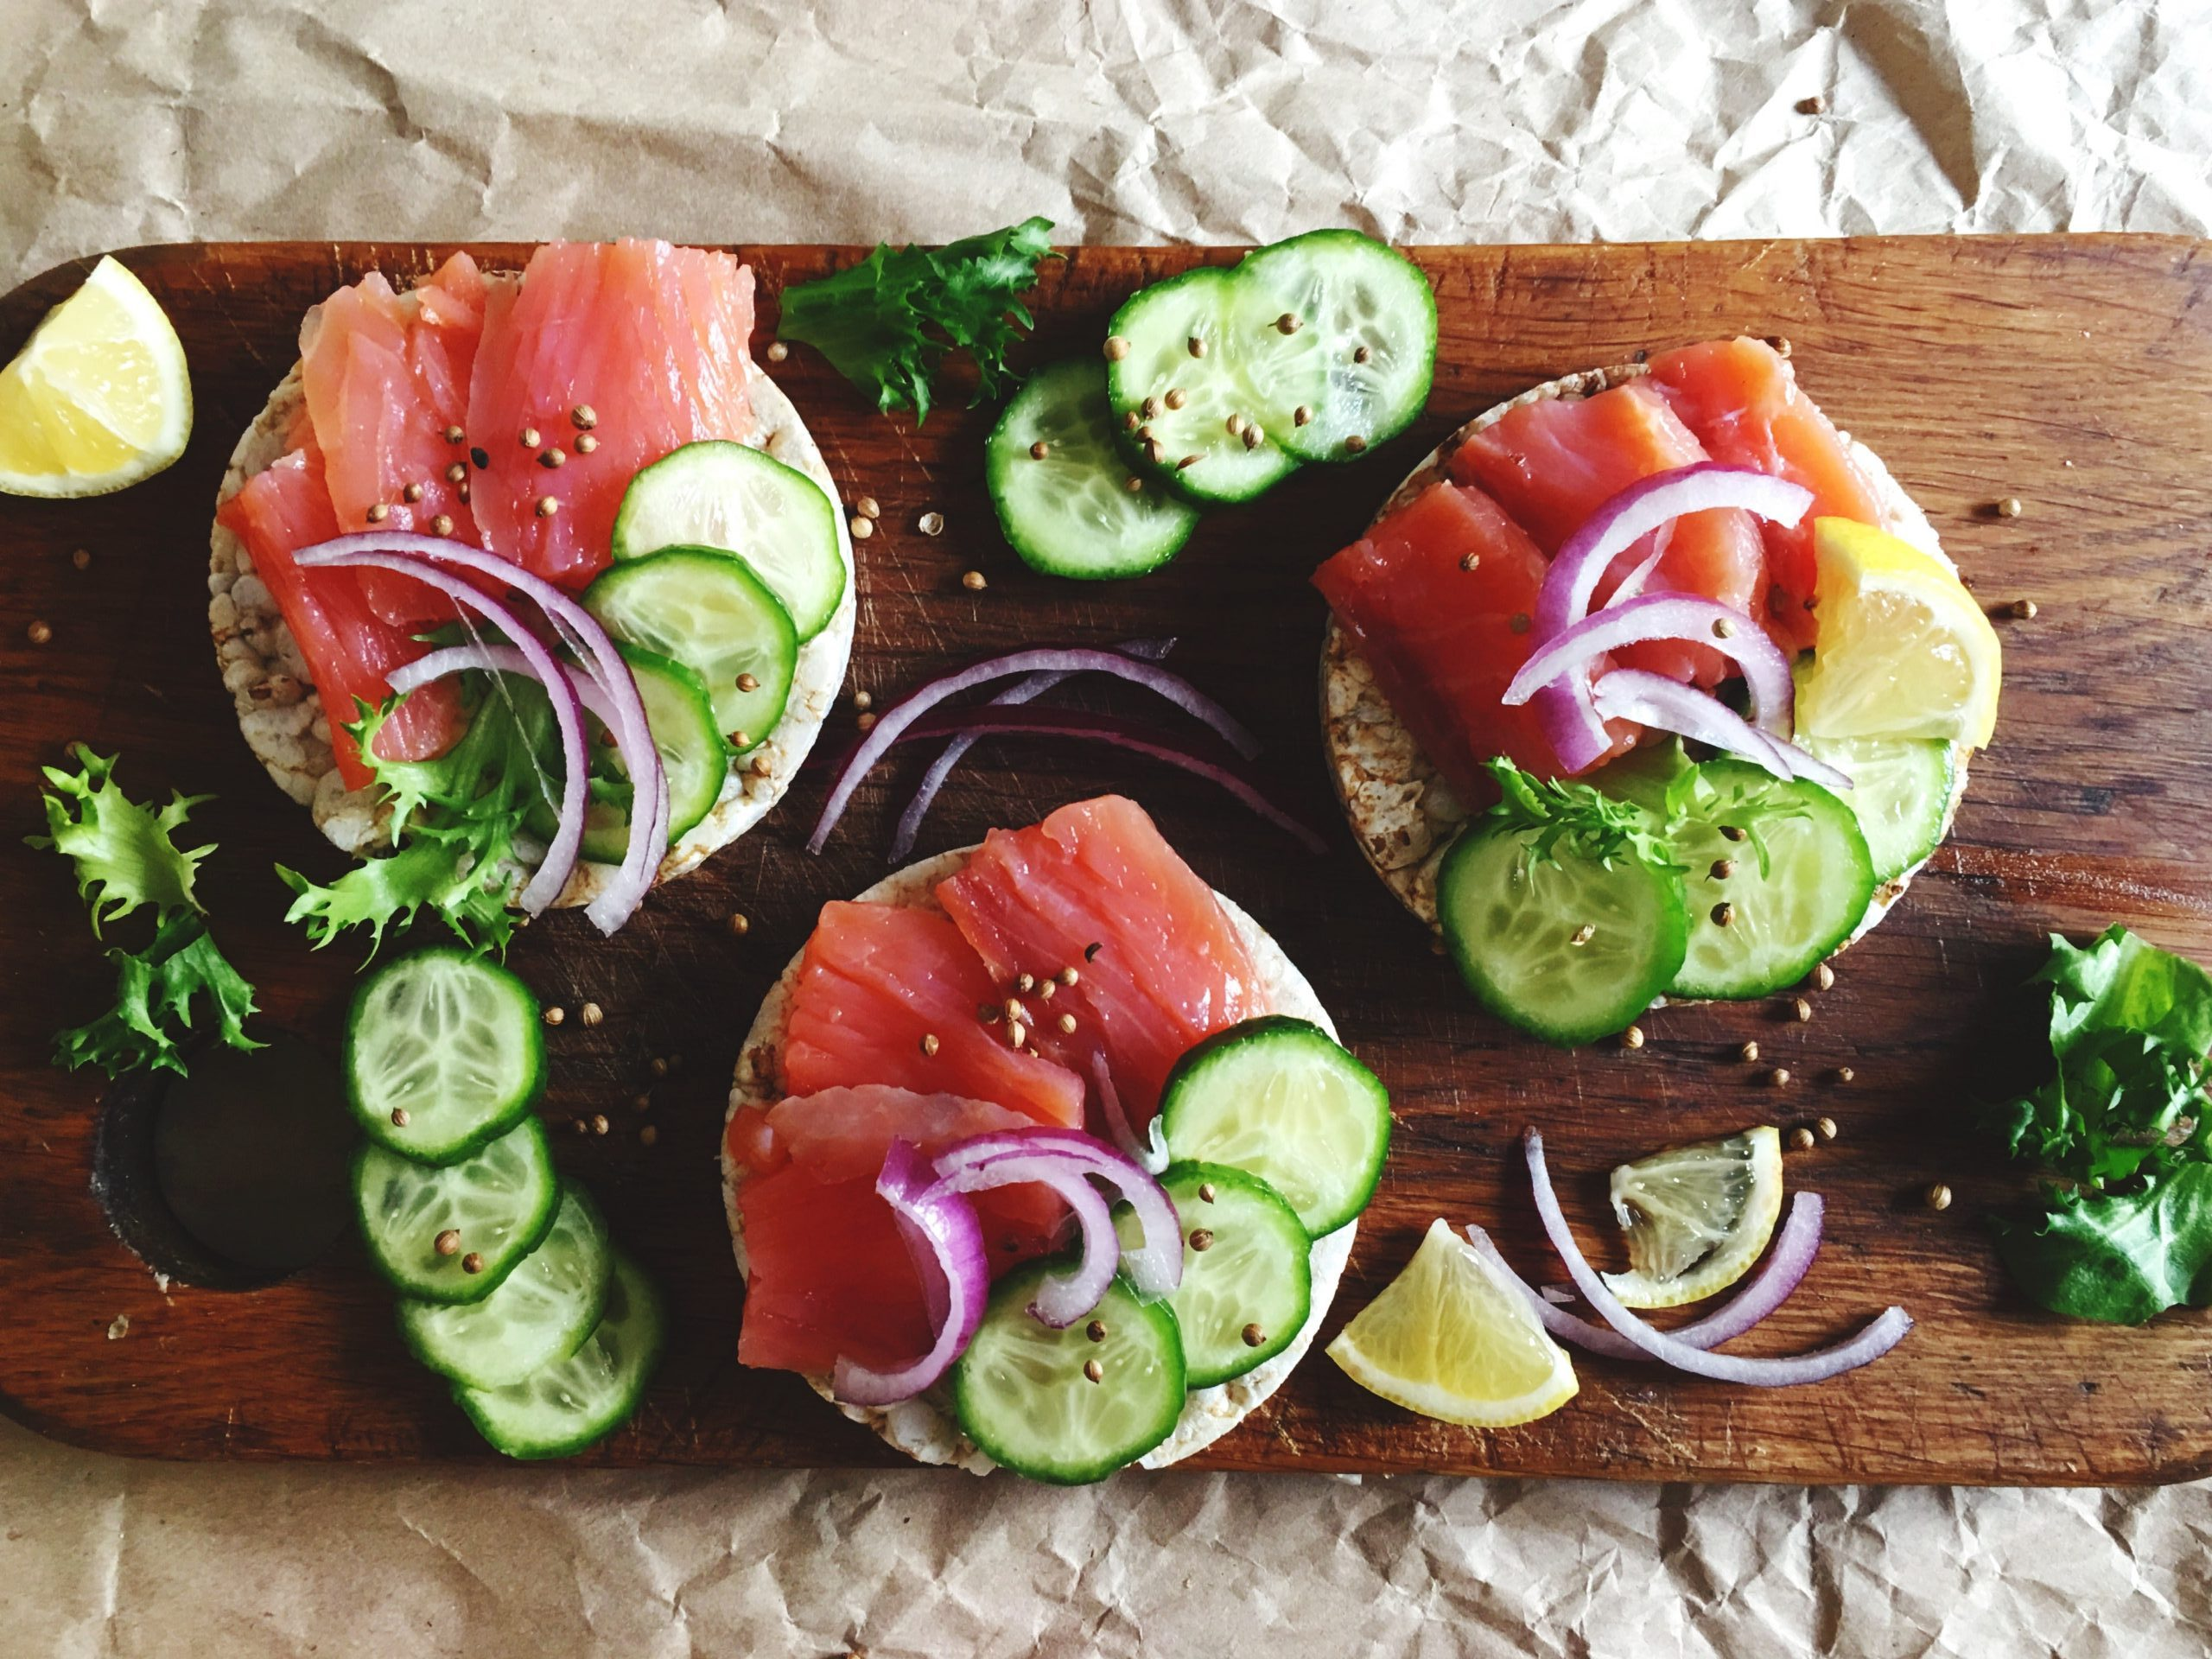 Lox 'n Bagel Sandwich with Cucumber, Dill, and Capers